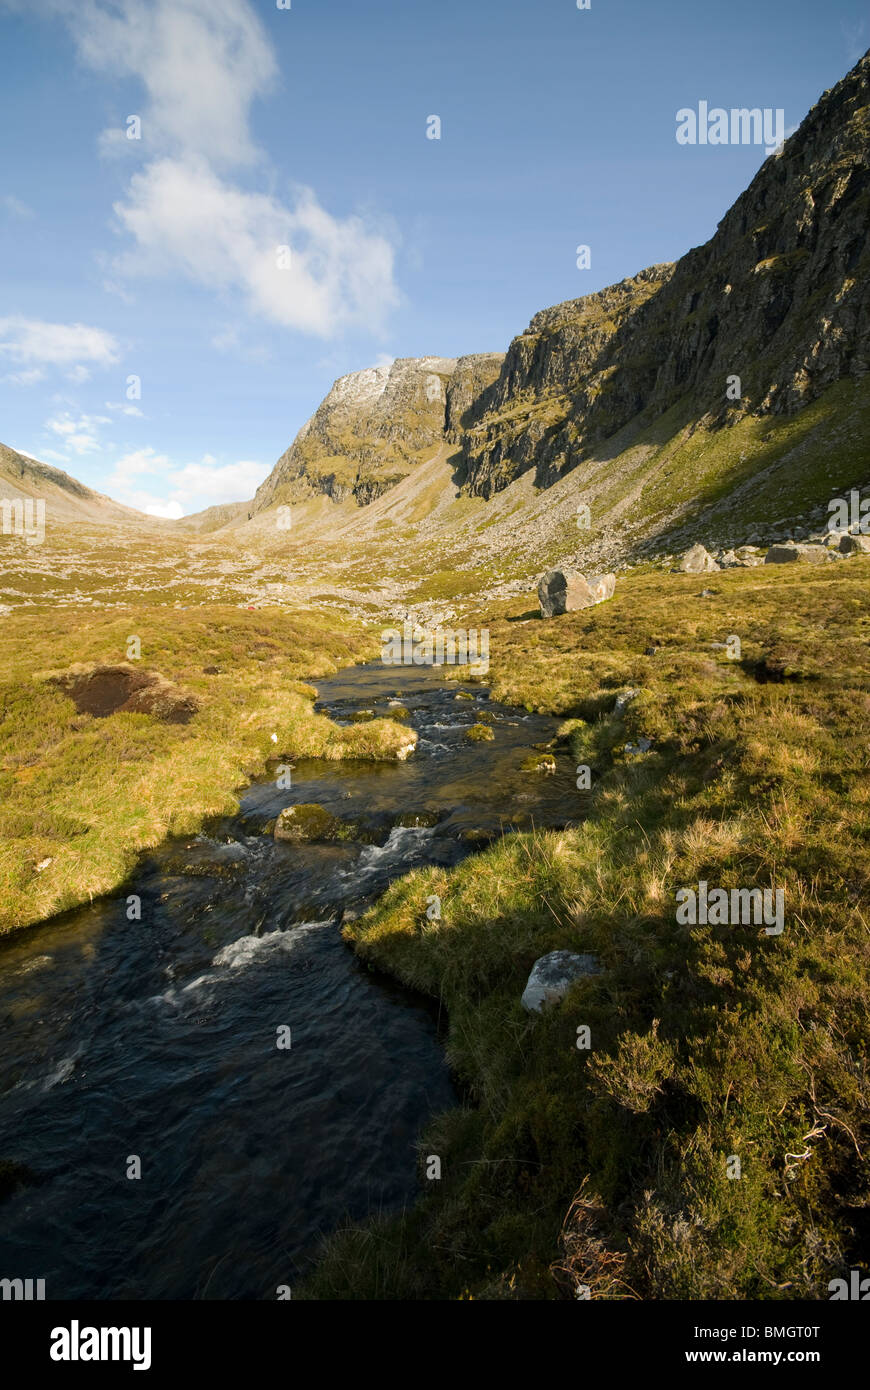 The river Lael below the cliffs of Beinn Dearg, Inverlael Forest, east of Ullapool, Highland Region, Scotland, UK Stock Photo